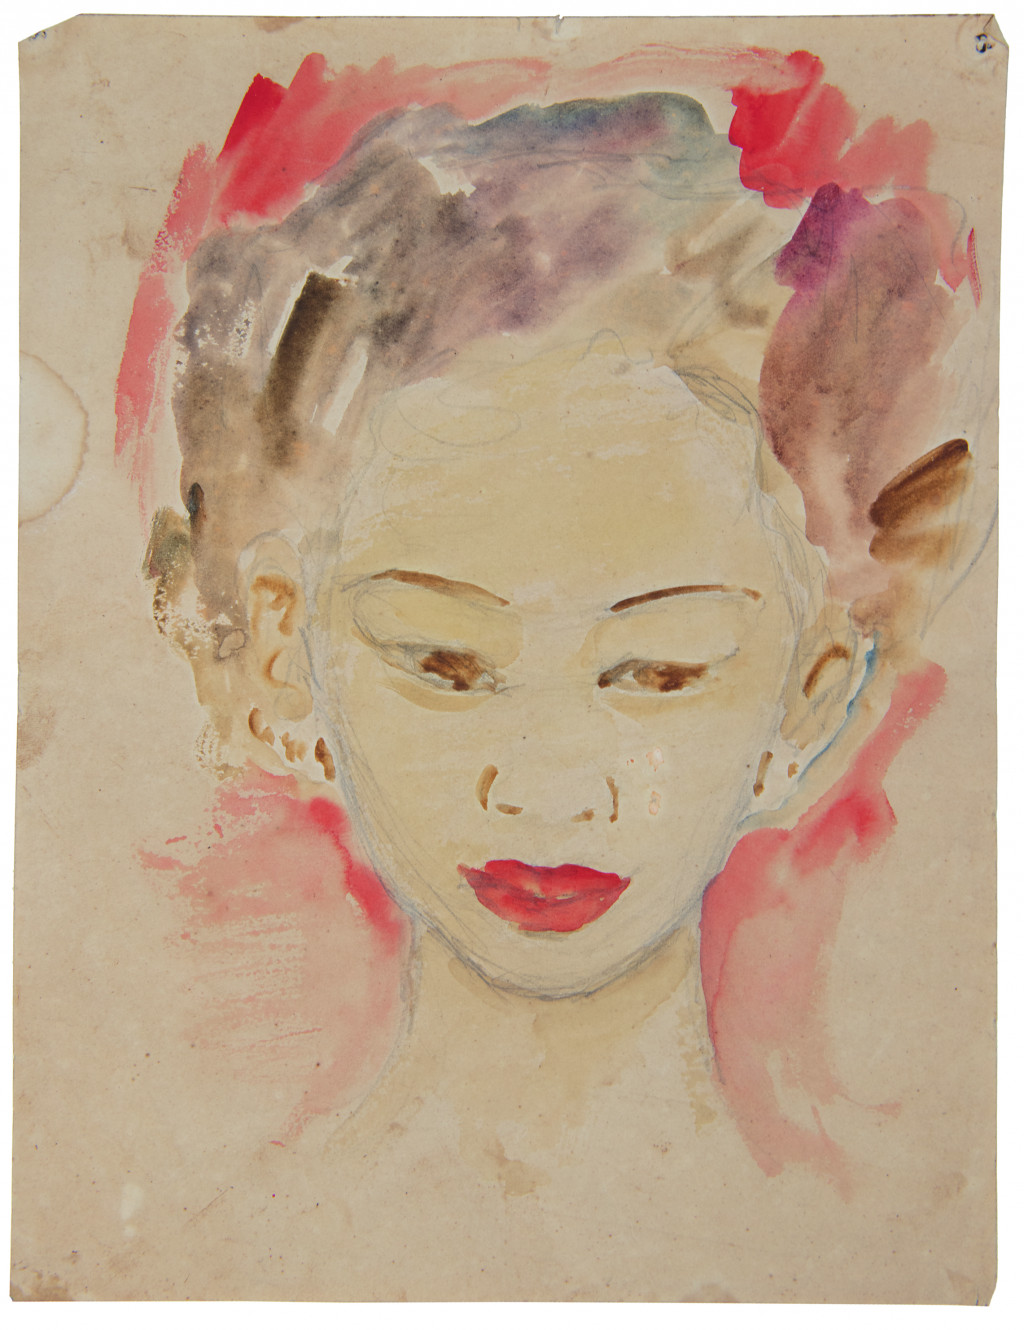 Untitled or year, watercolor, attributed to Nola Hatterman.